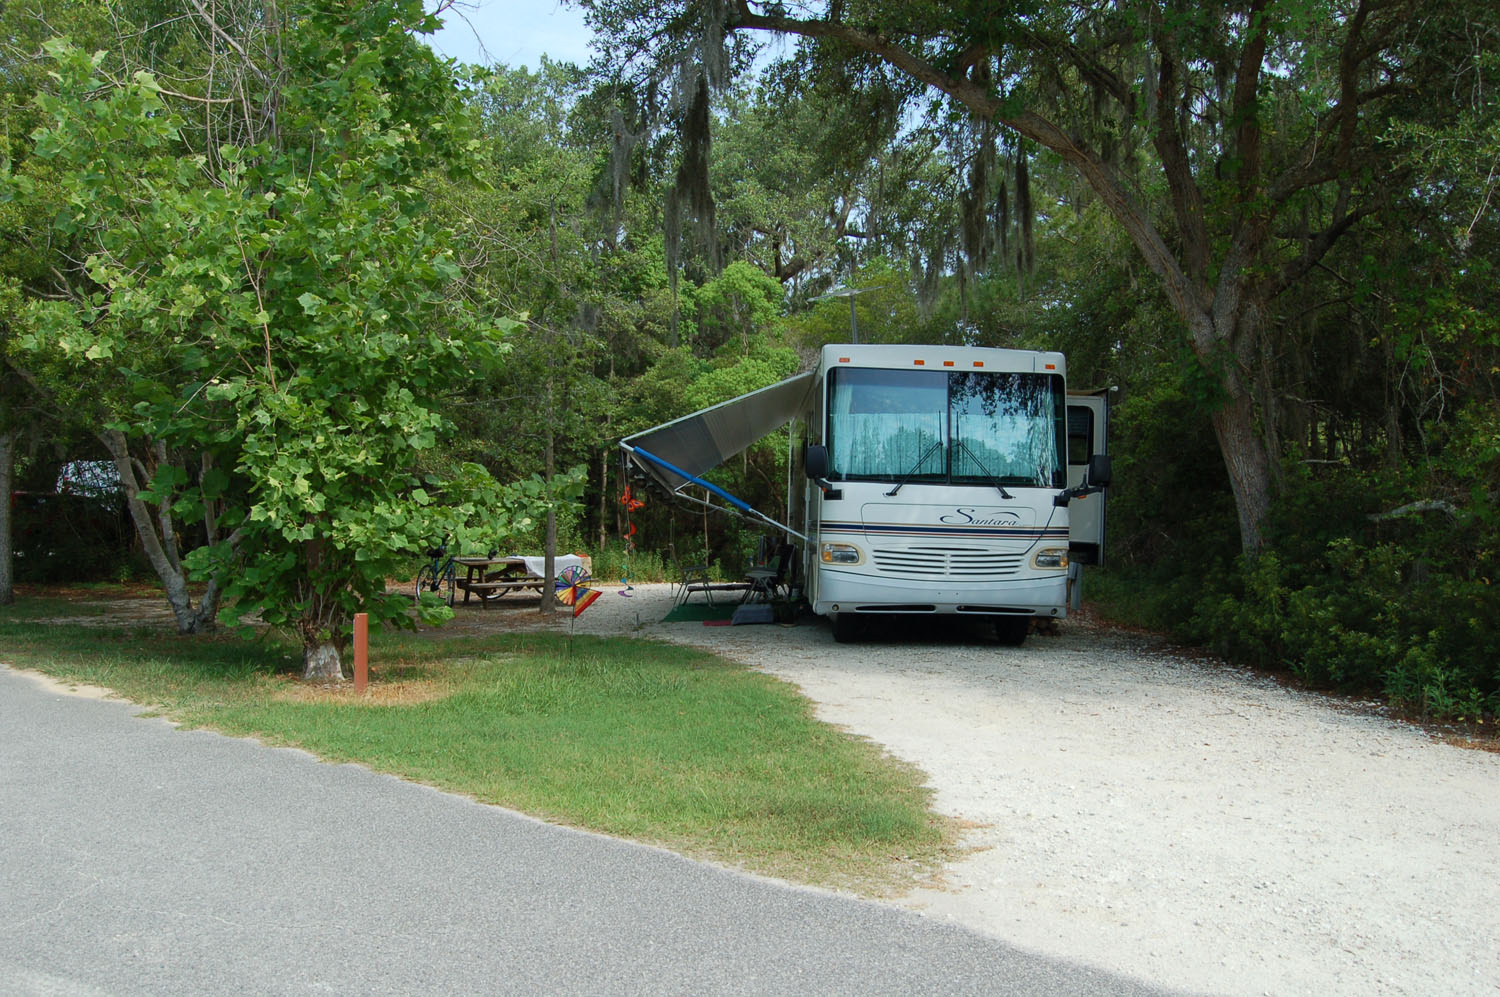 Image of campsite #49 at the Campground at James Island County Park